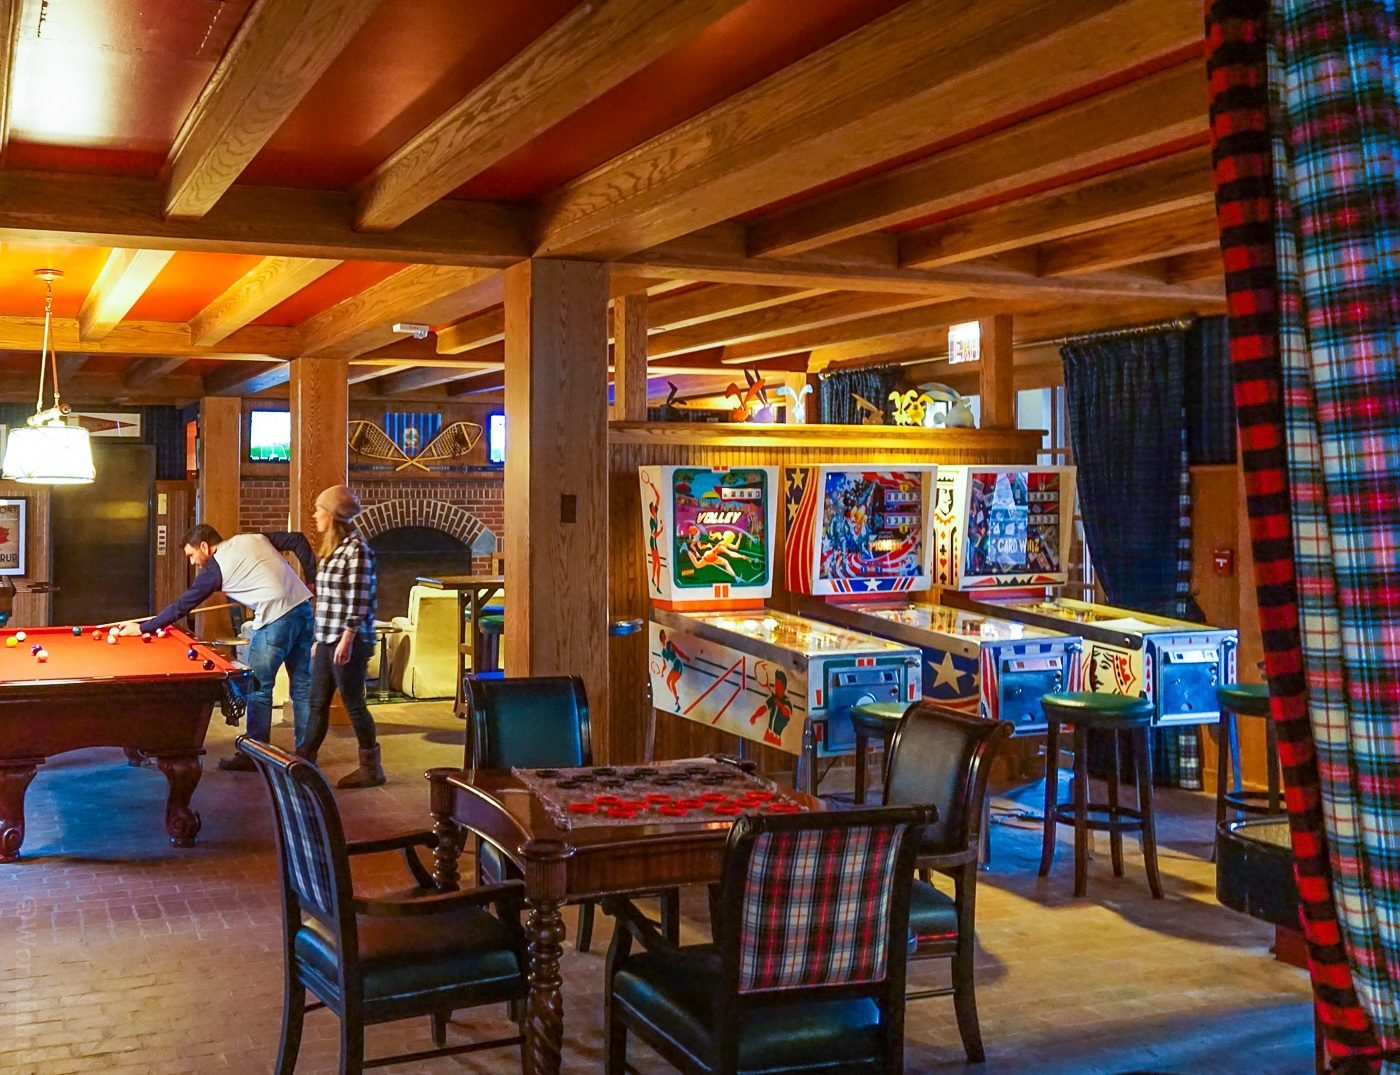 The cozy Game Room at the Woodstock Inn.